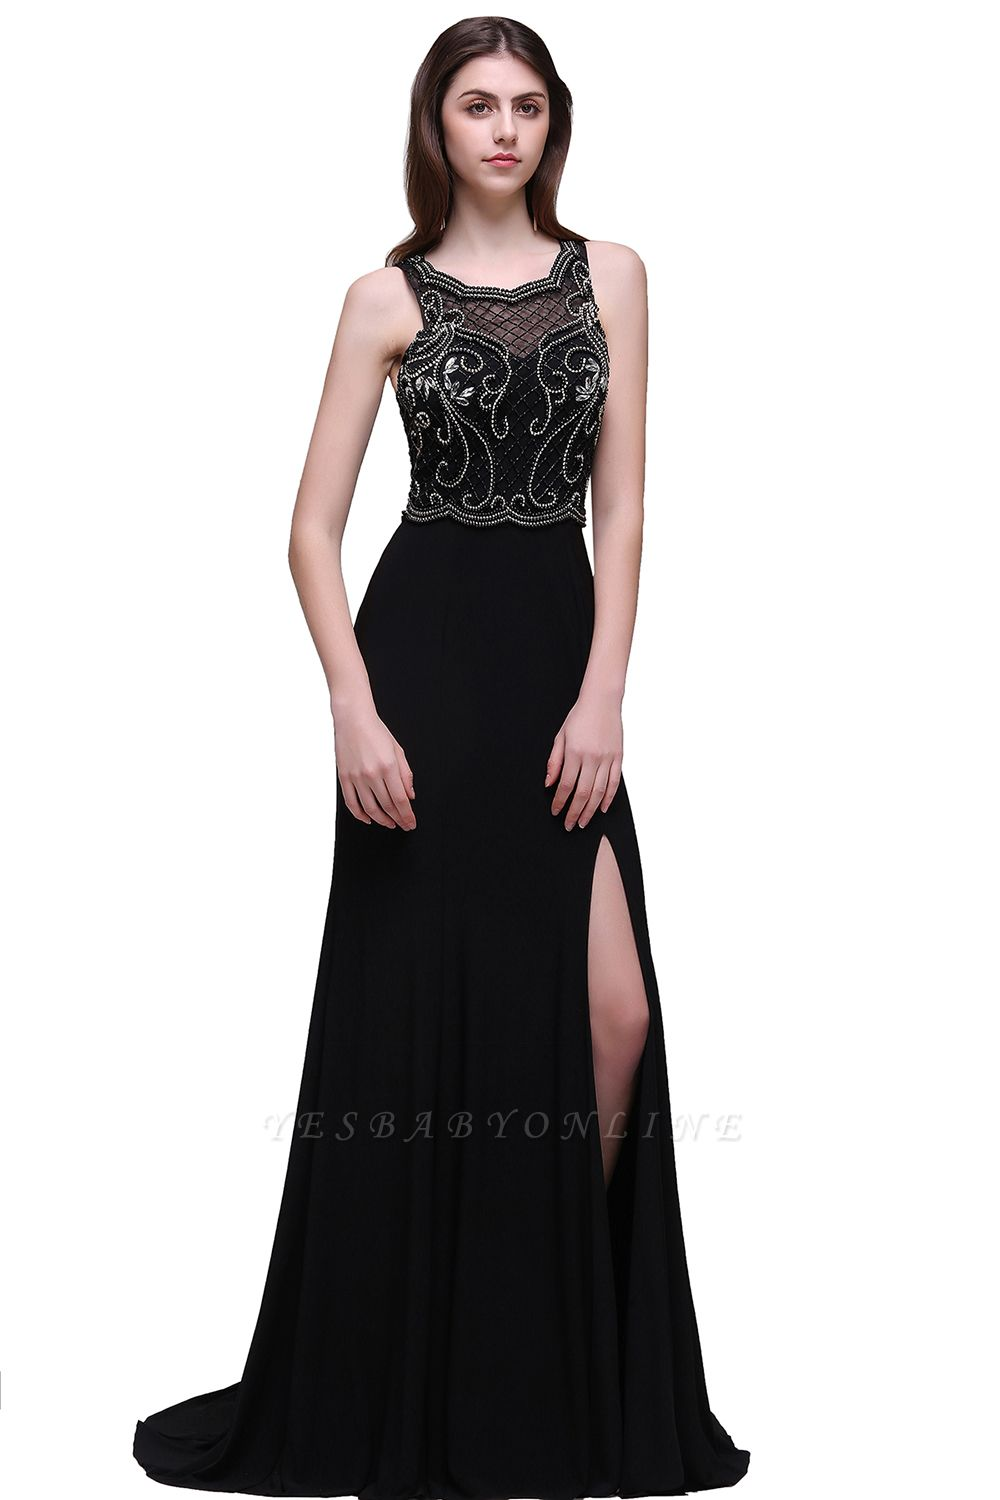 Sweep-train Chic Split-front Sleeveless A-line Chiffon Prom Dress